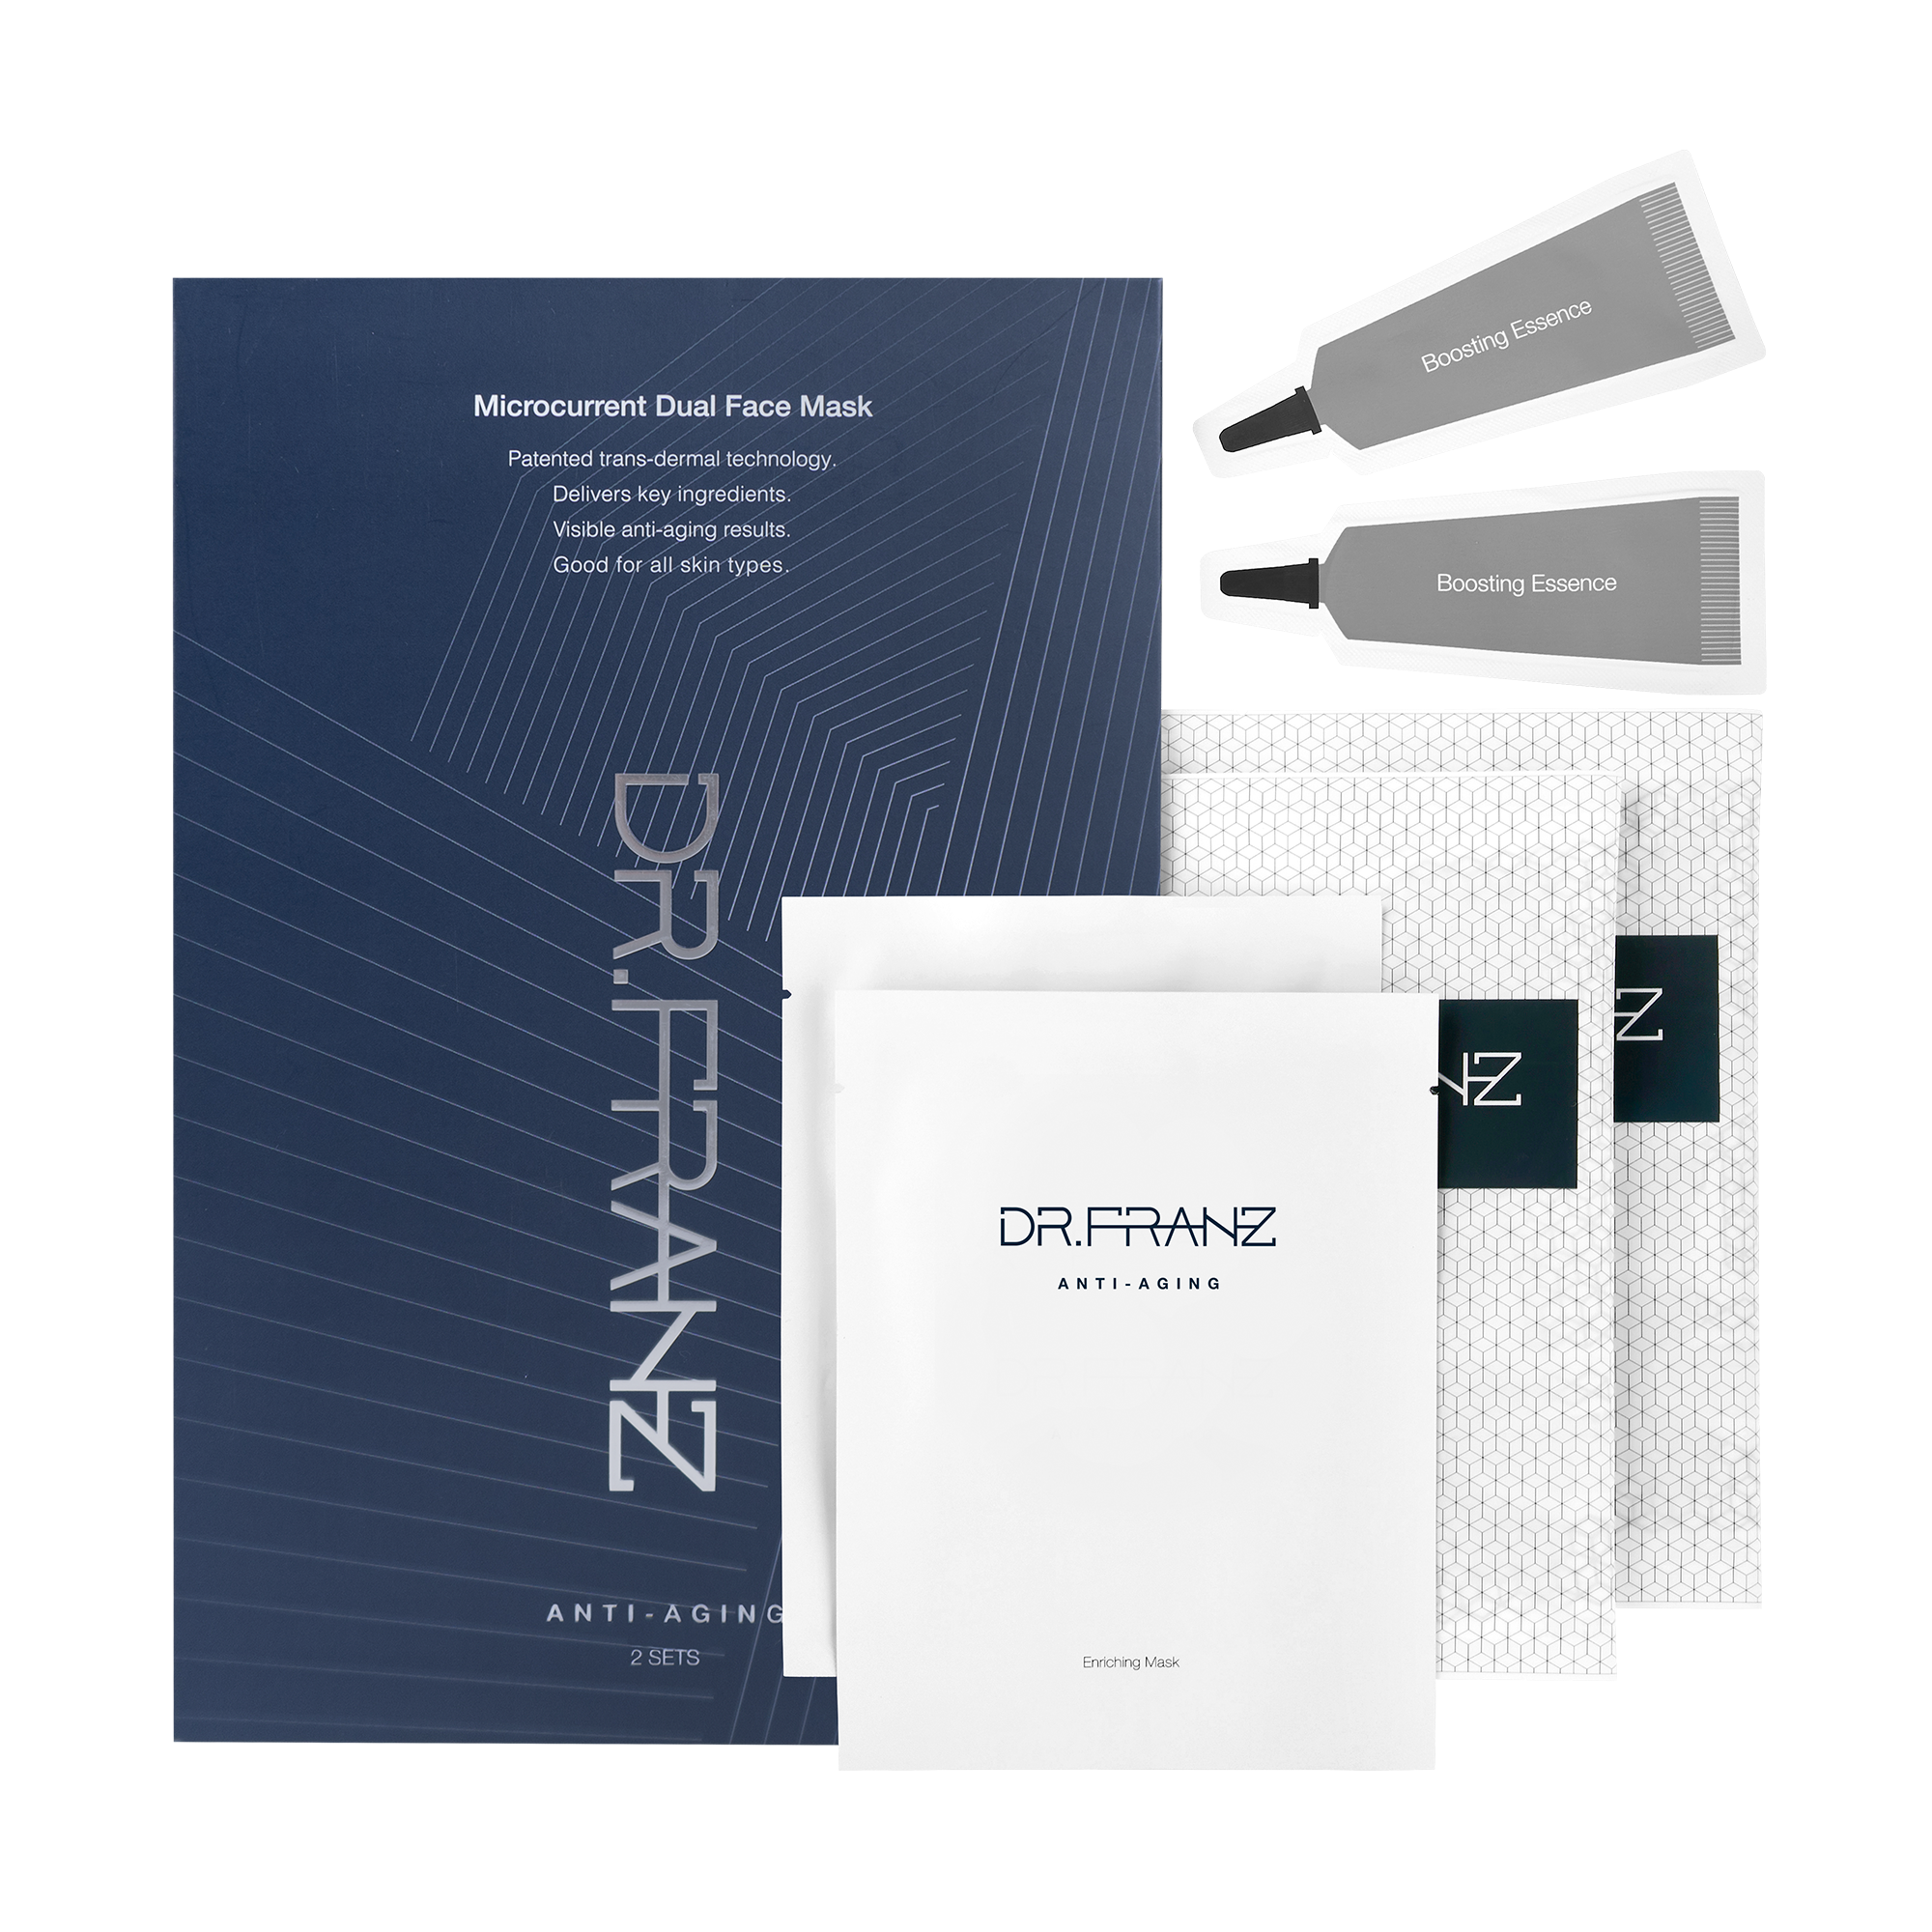 FRANZMD_Product_Thumbnail_Image_AntiAging_contents_2048x